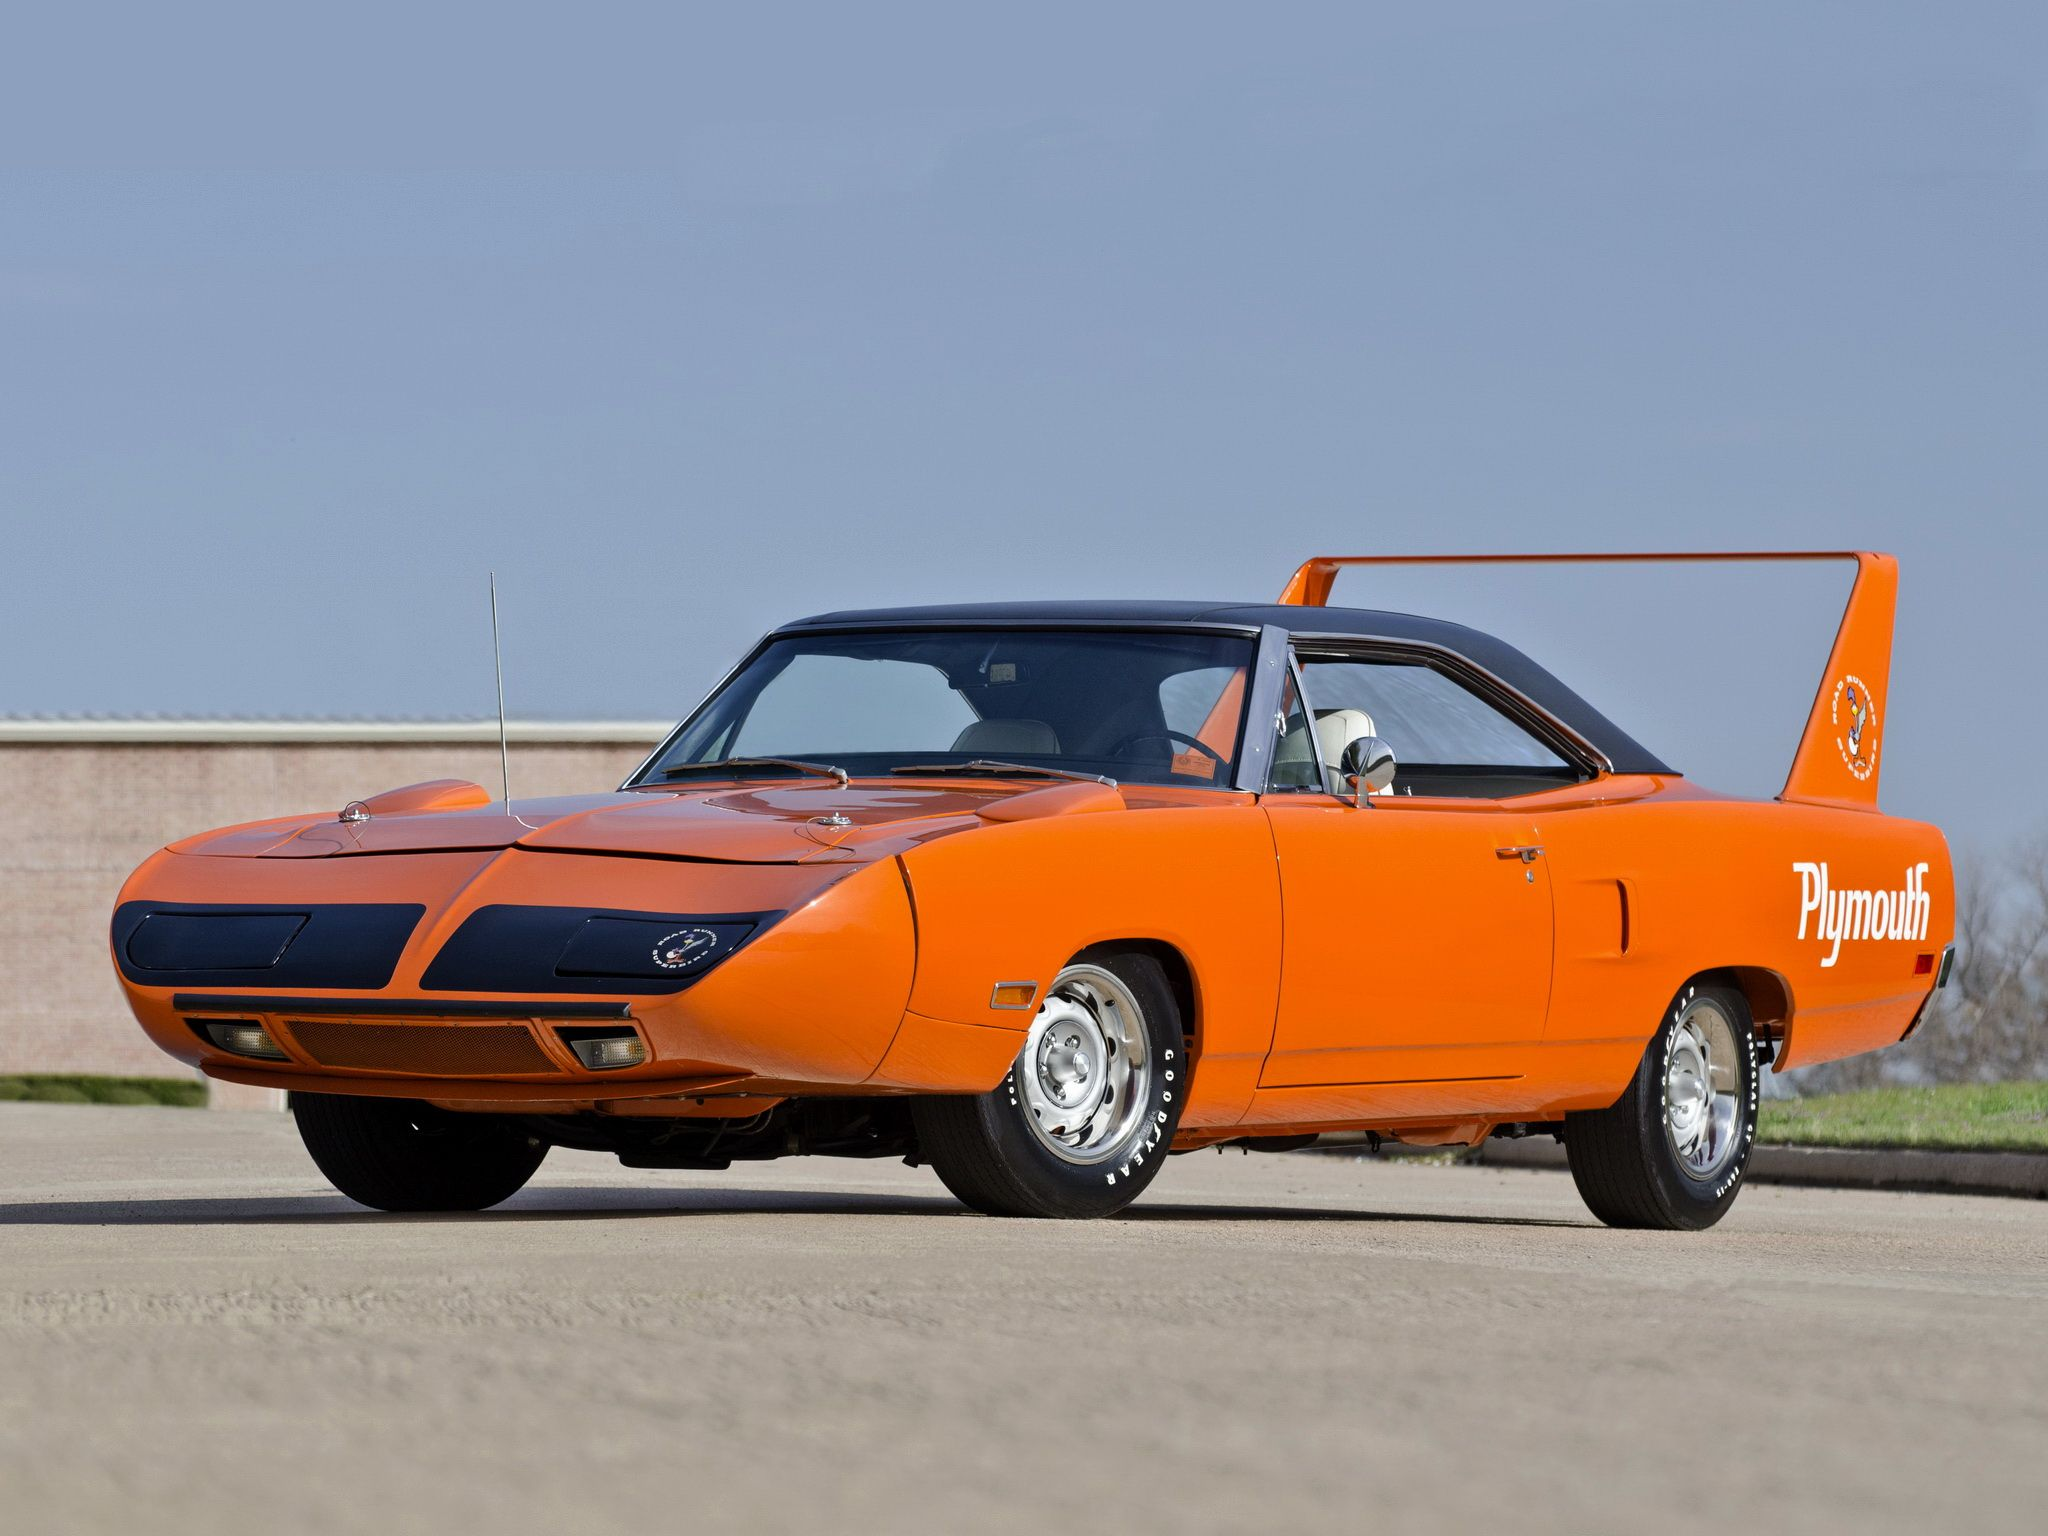 1970 Plymouth Road Runner Superbird Http Www Musclecardefinition Com Plymouth Hemi Superbird Superbird Muscle Cars